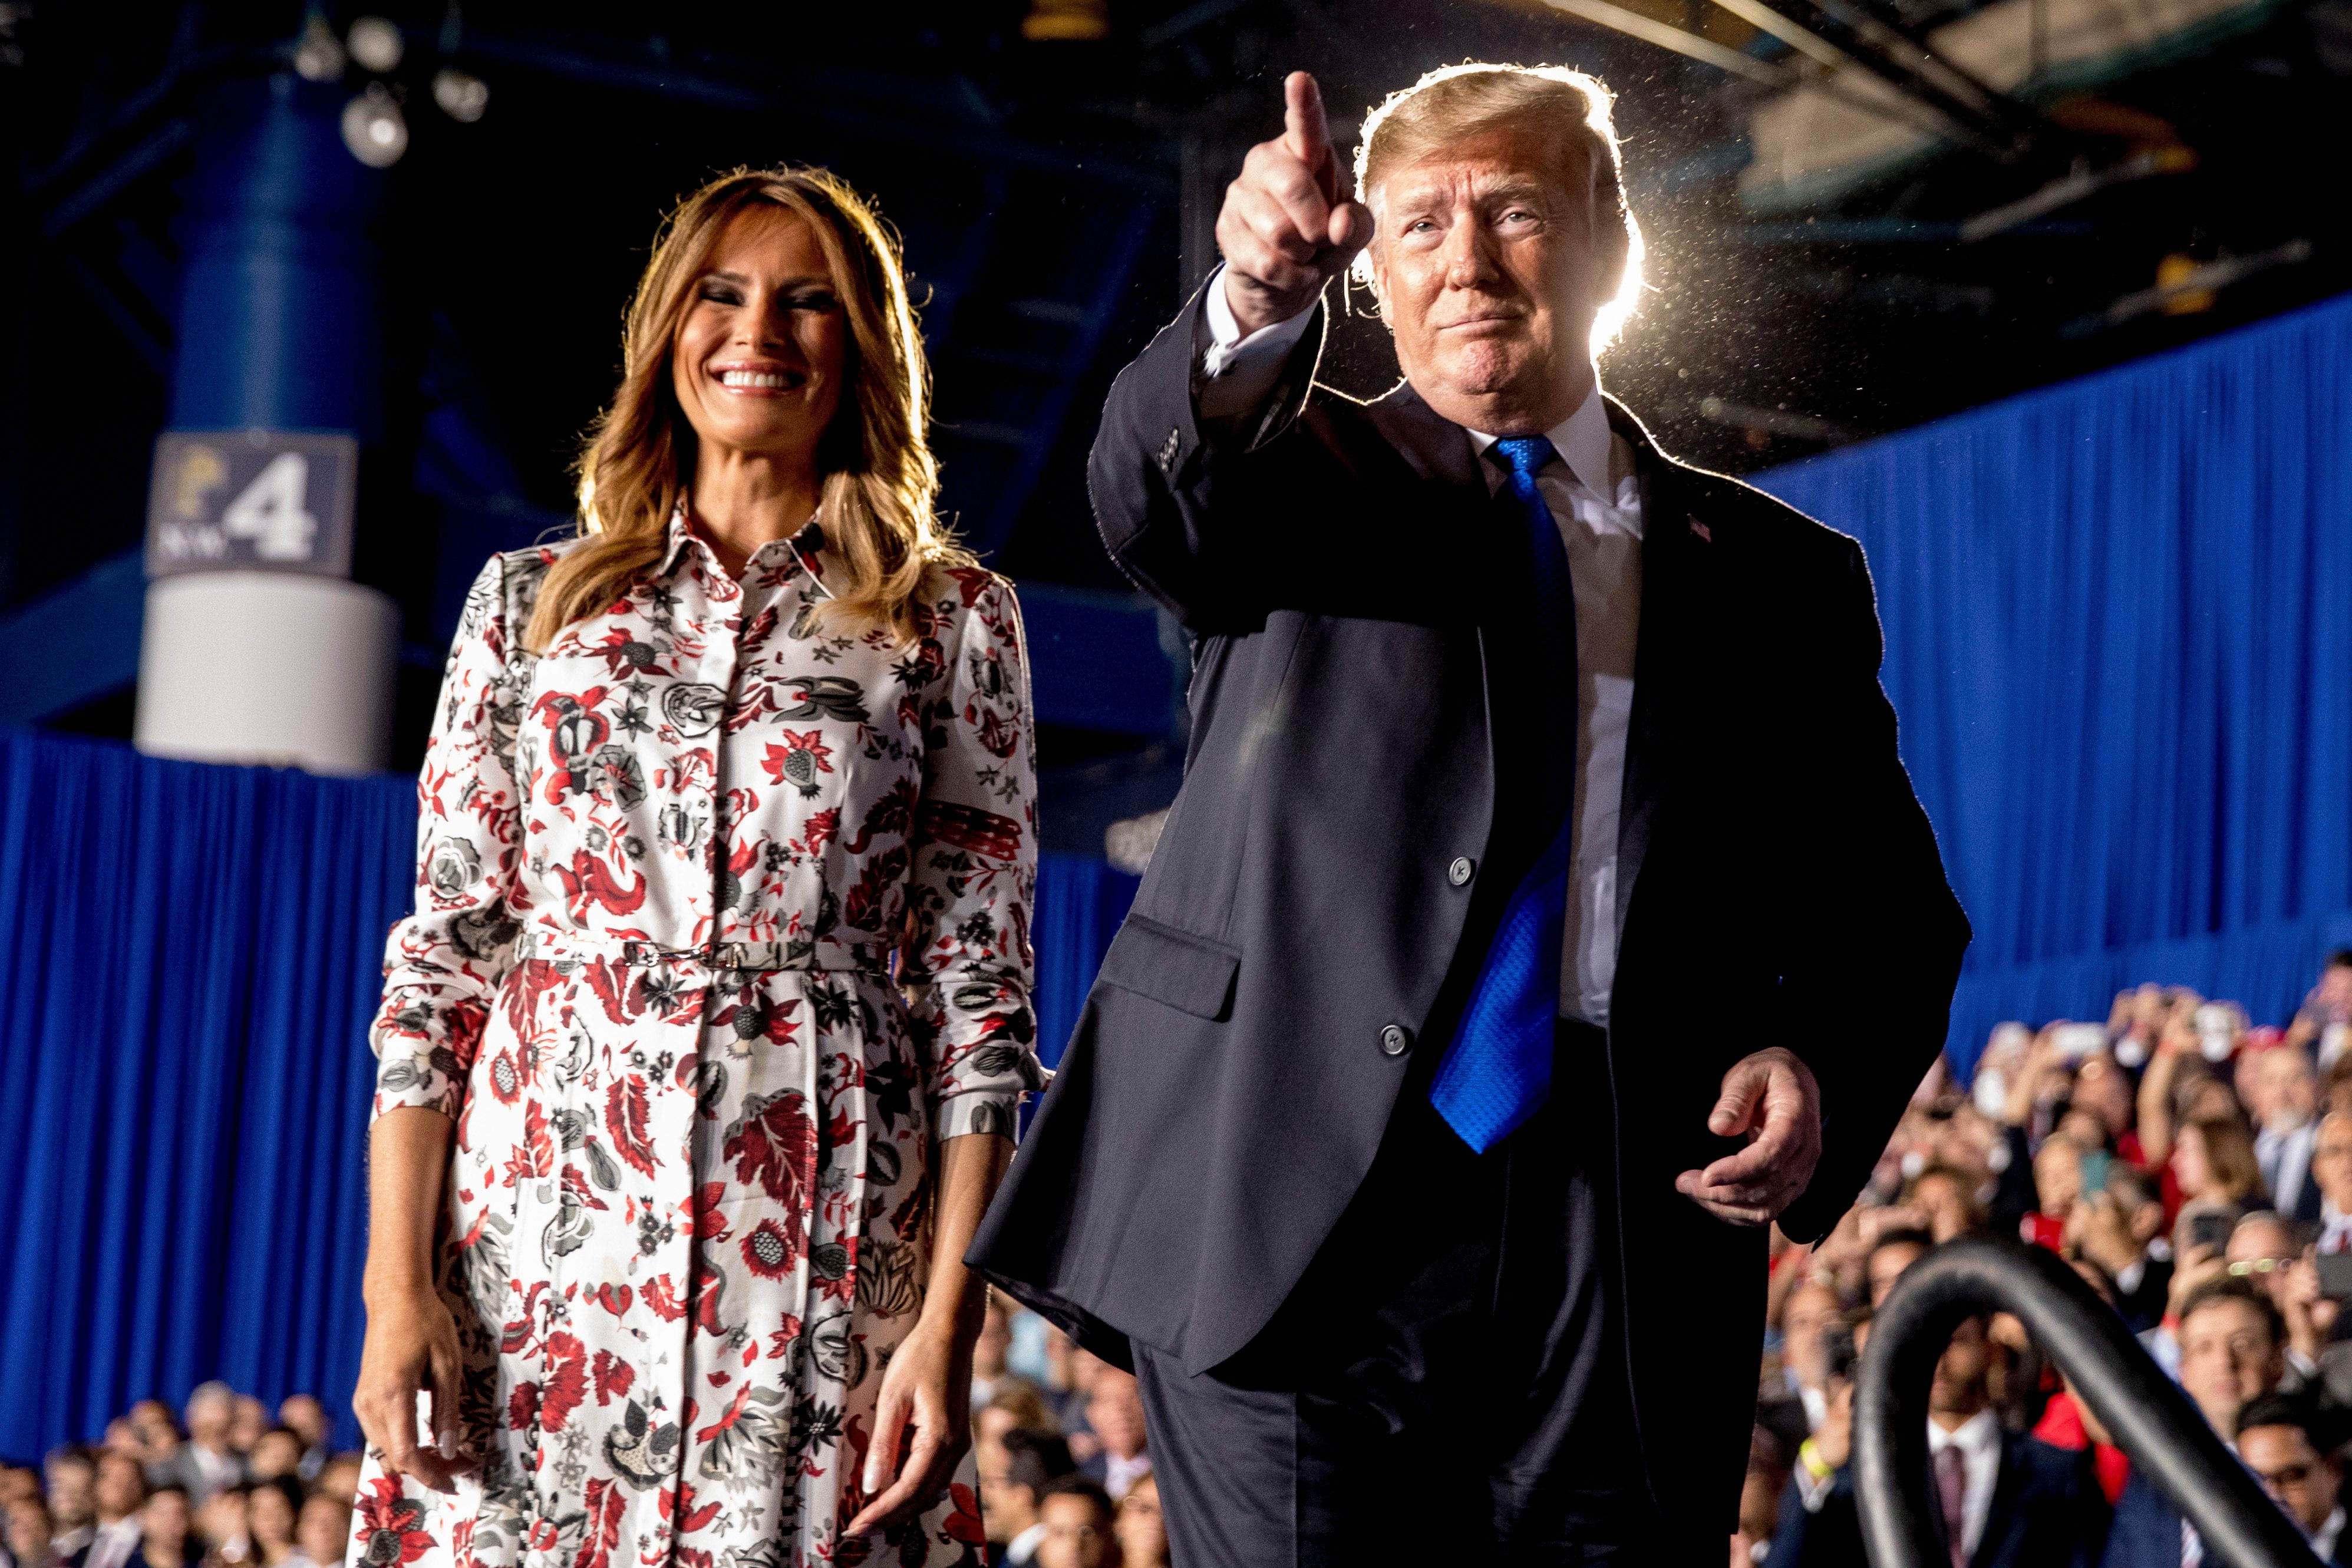 President Donald Trump and first lady Melania Trump take the stage in front of a Venezuelan American community at Florida Ocean Bank Convocation Center at Florida International University in Miami, Fla., Monday, Feb. 18, 2019, to speak out against President Nicolas Maduro's government and its socialist policies. (AP Photo/Andrew Harnik)